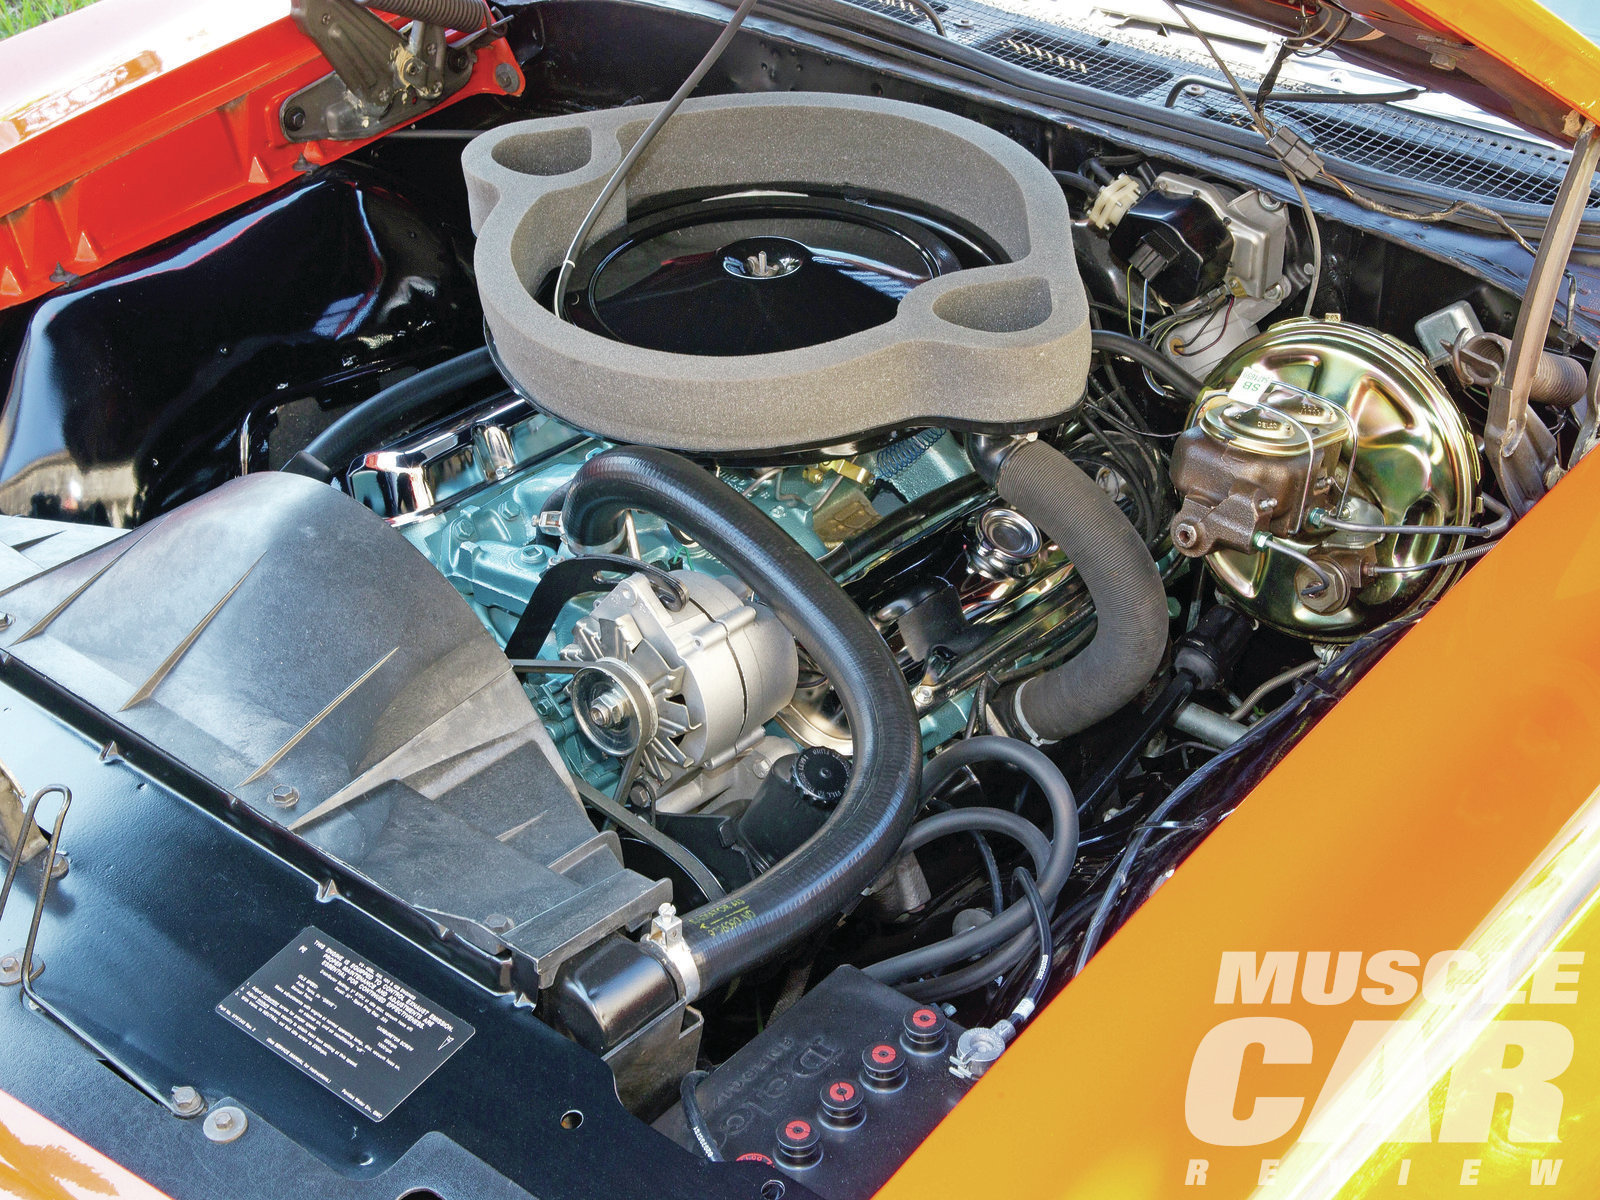 The one area of the Judge that needed the most work when Rich bought it was the engine bay. It received a serious freshening, though nearly all the components—including the plug wires, hoses, and clamps—are original. Only the battery and the exhaust system have been replaced.